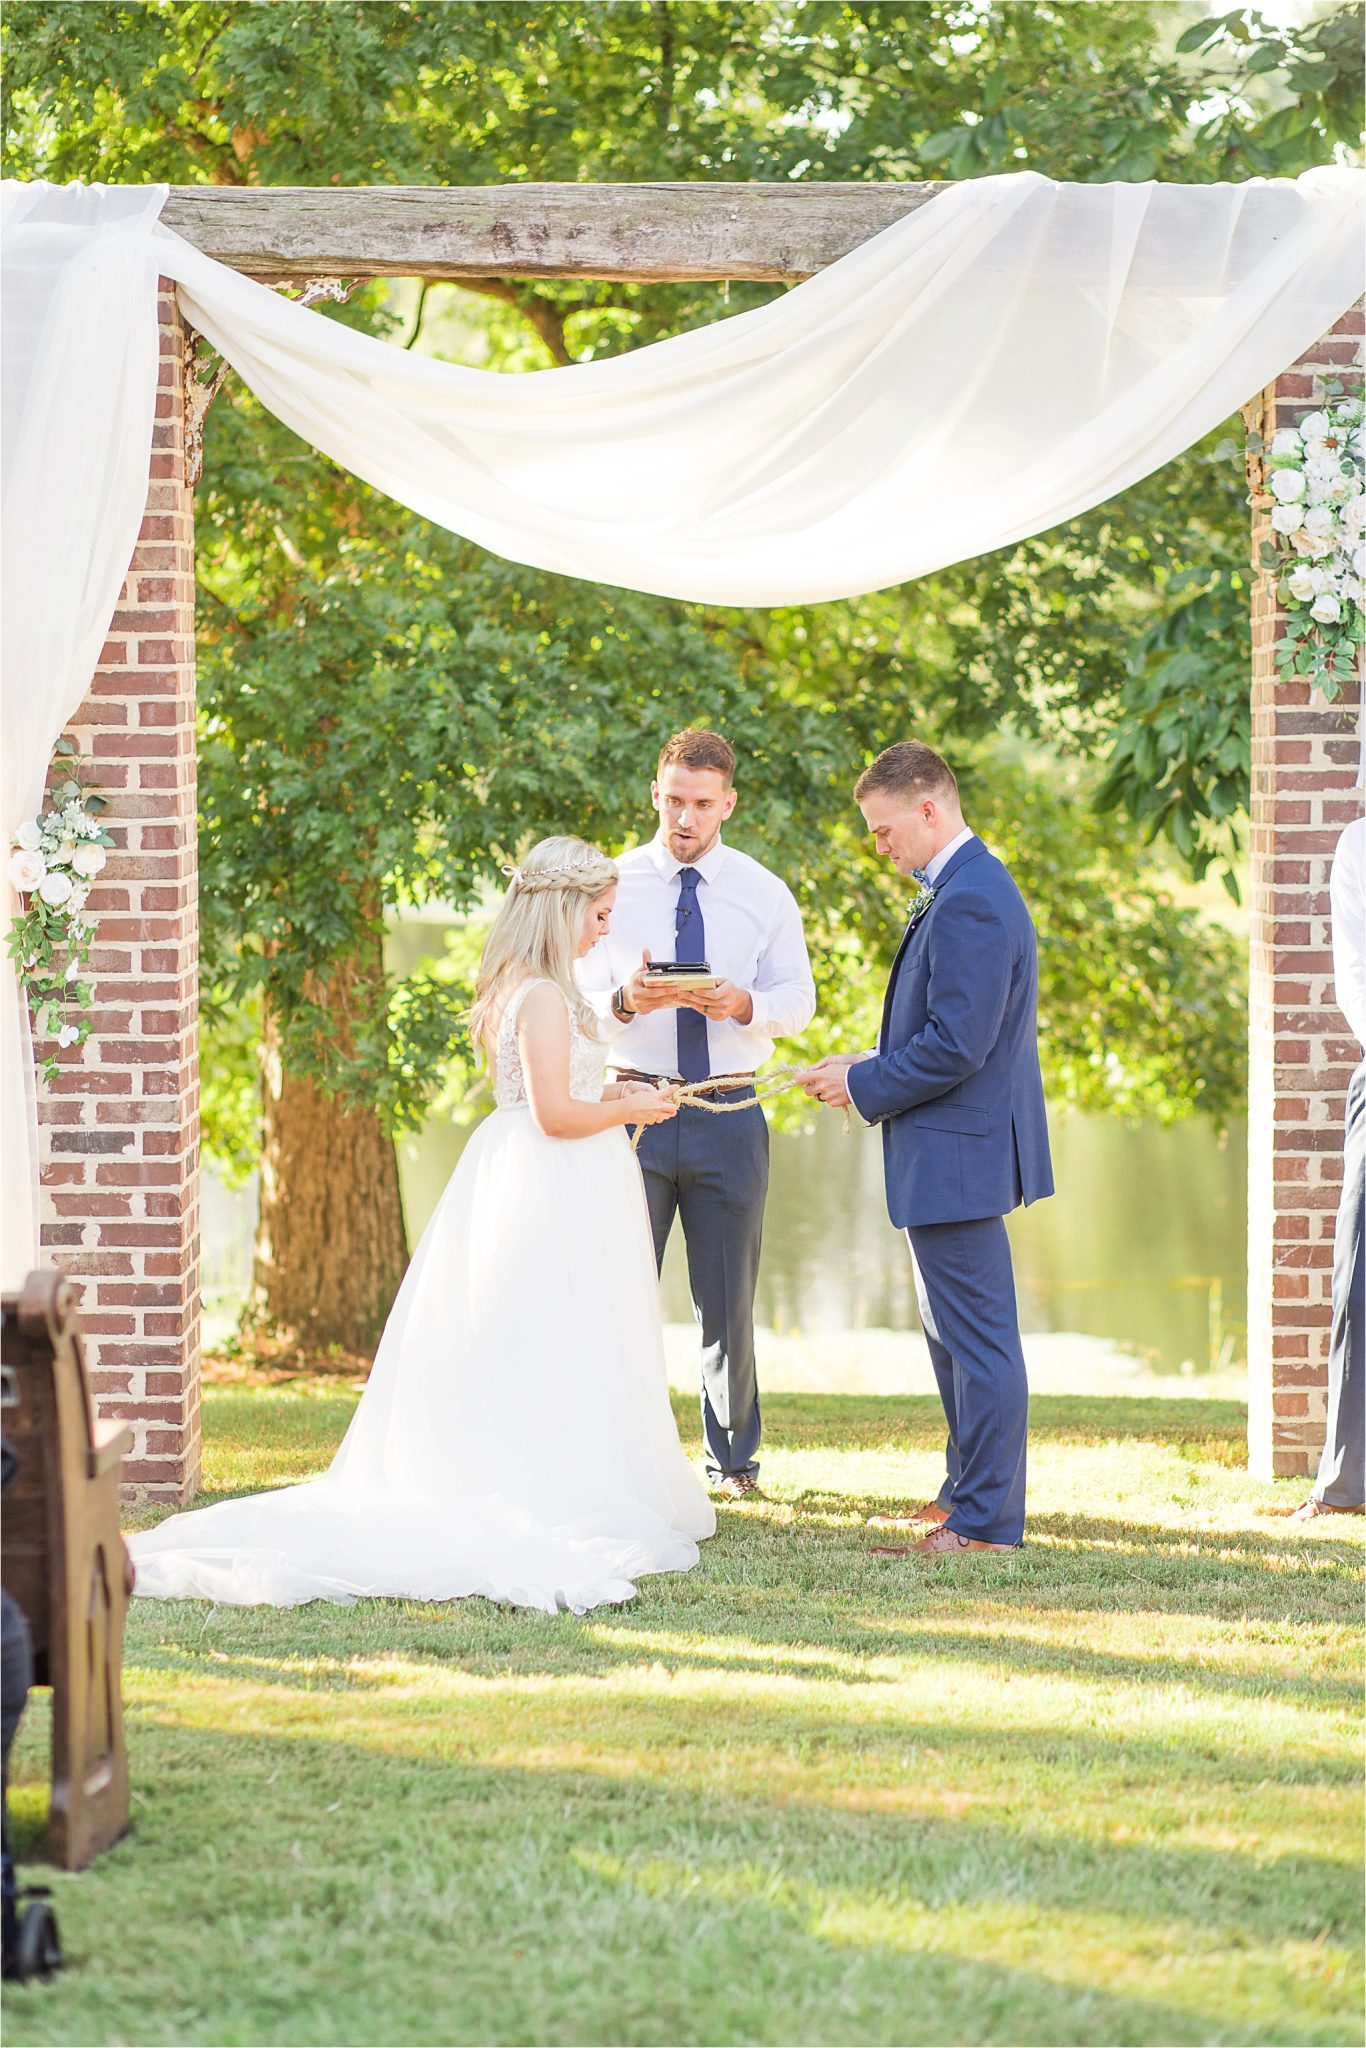 wedding-ceremony-alabama-wedding-photographer-blue-navy-vows-ceremonial-rope